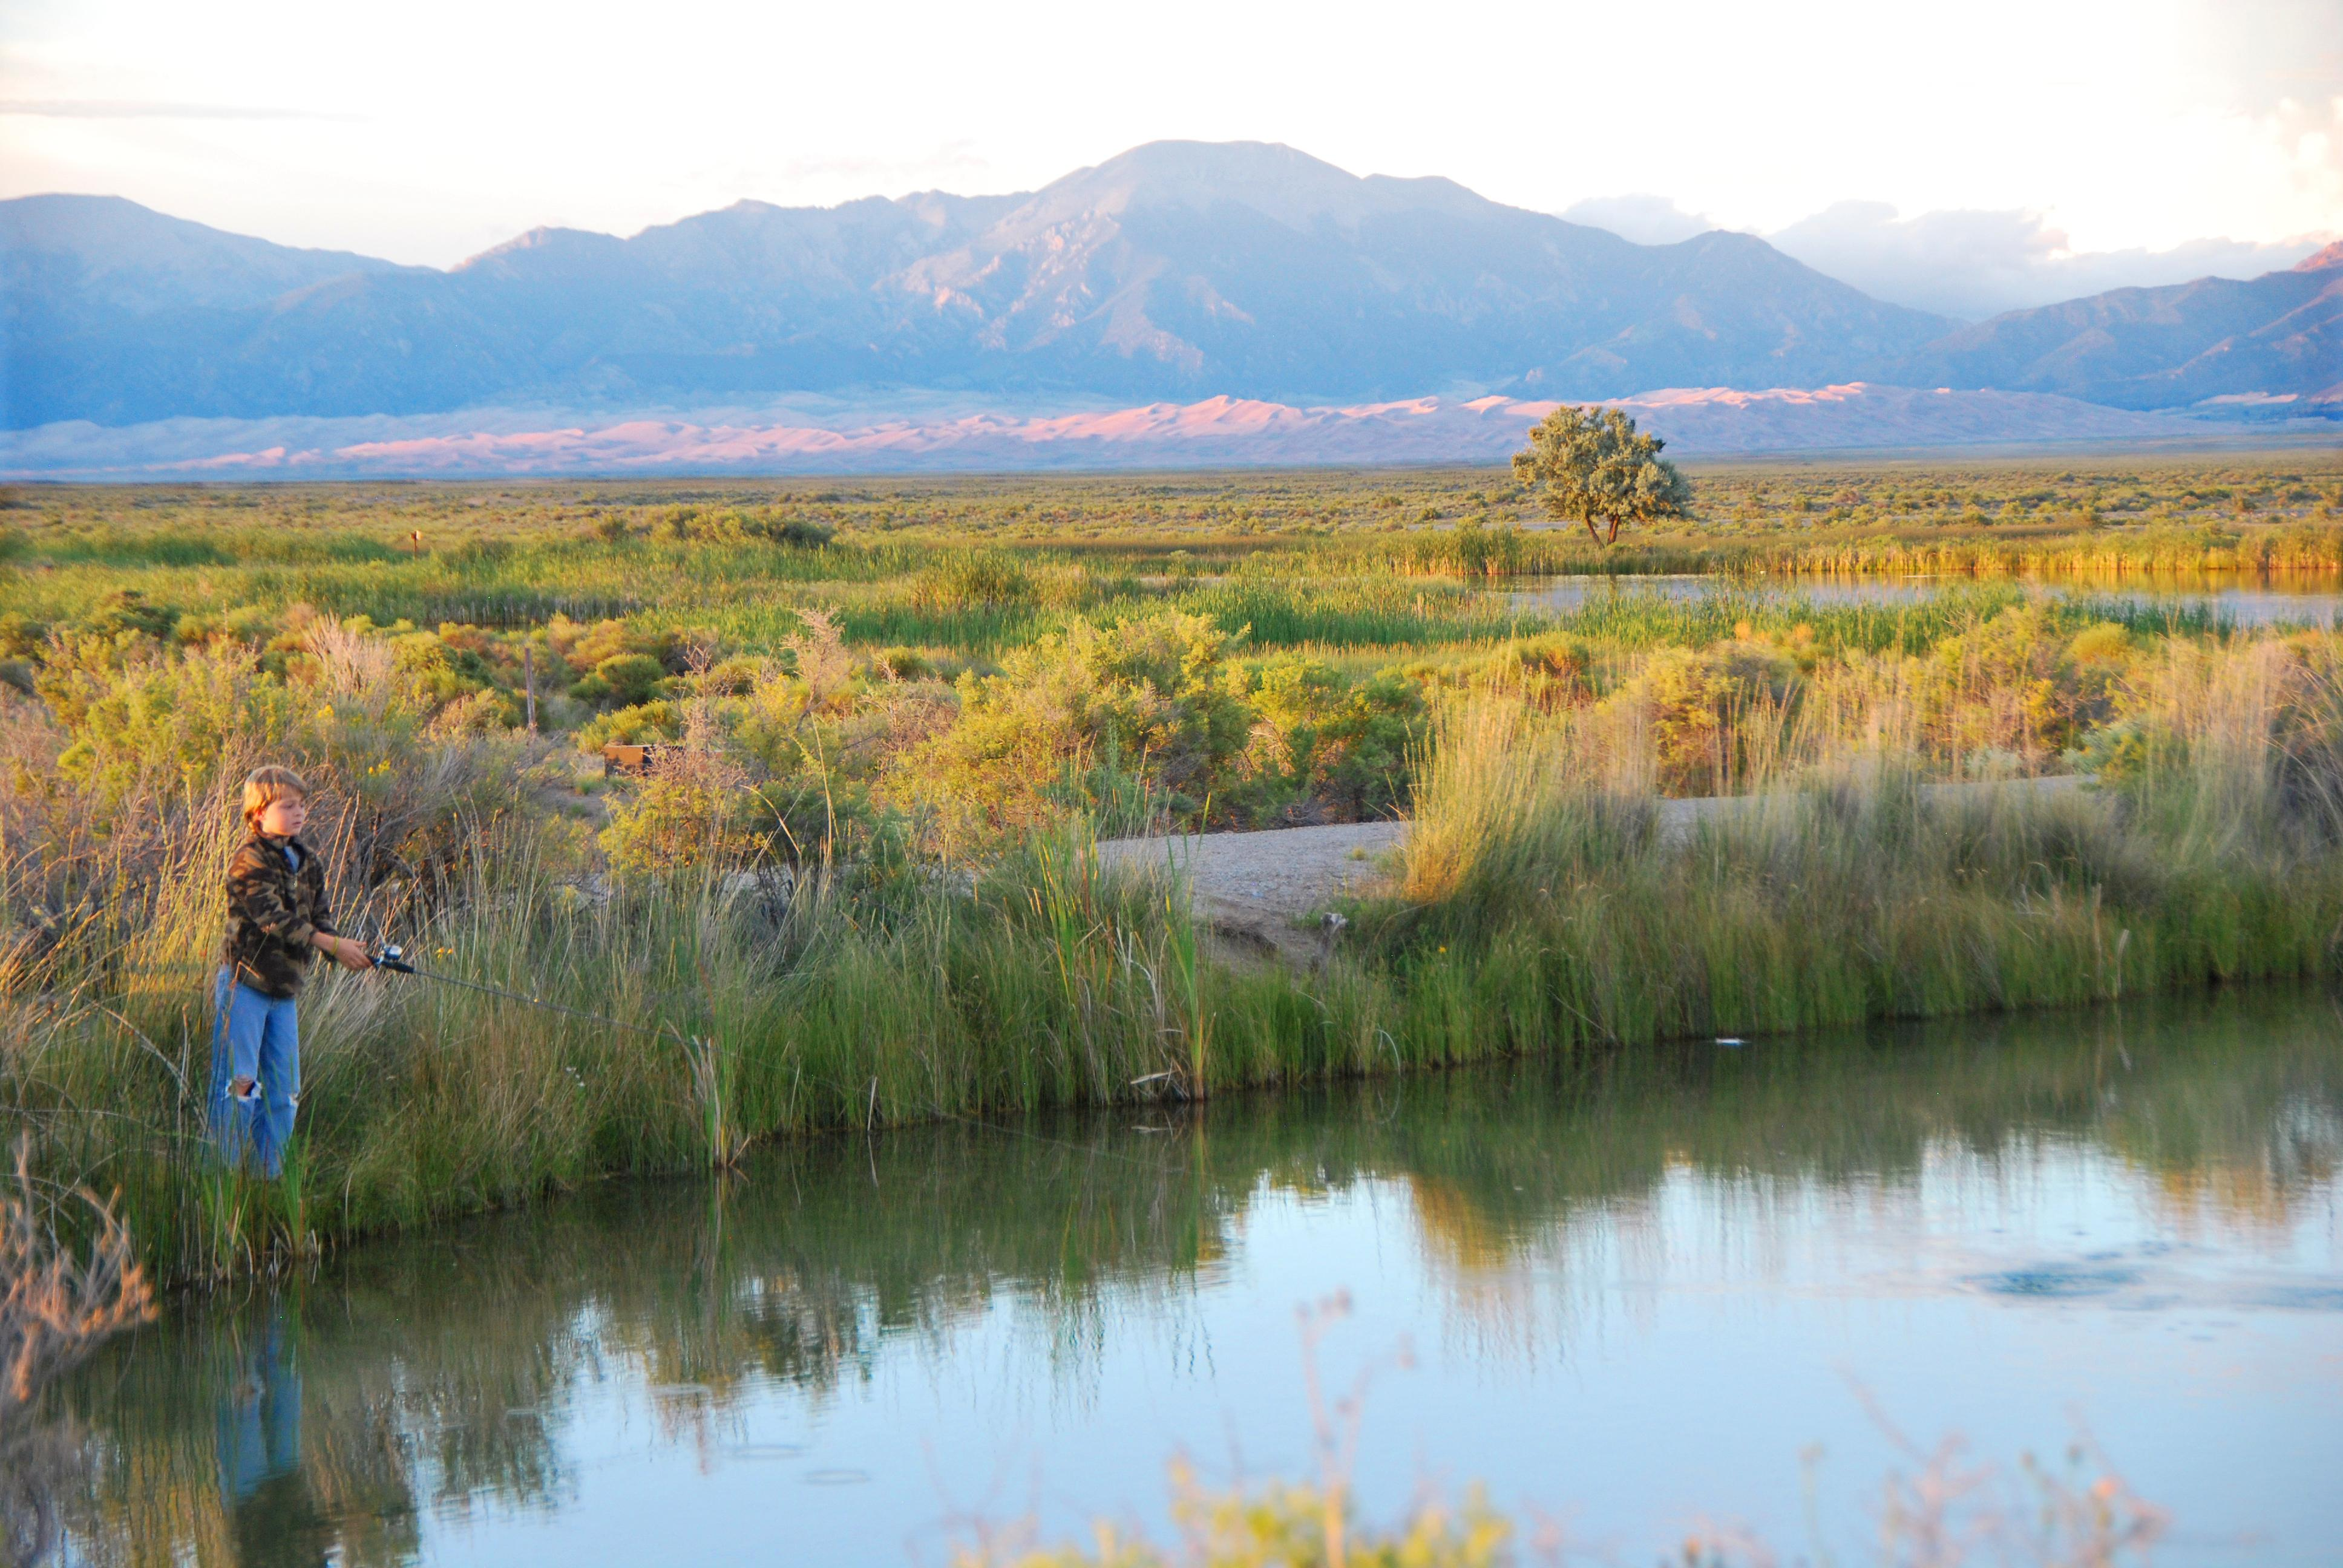 File Boy Fishing At Blanca Wetlands Dunes And Sangre De Cristo Mountains In Background